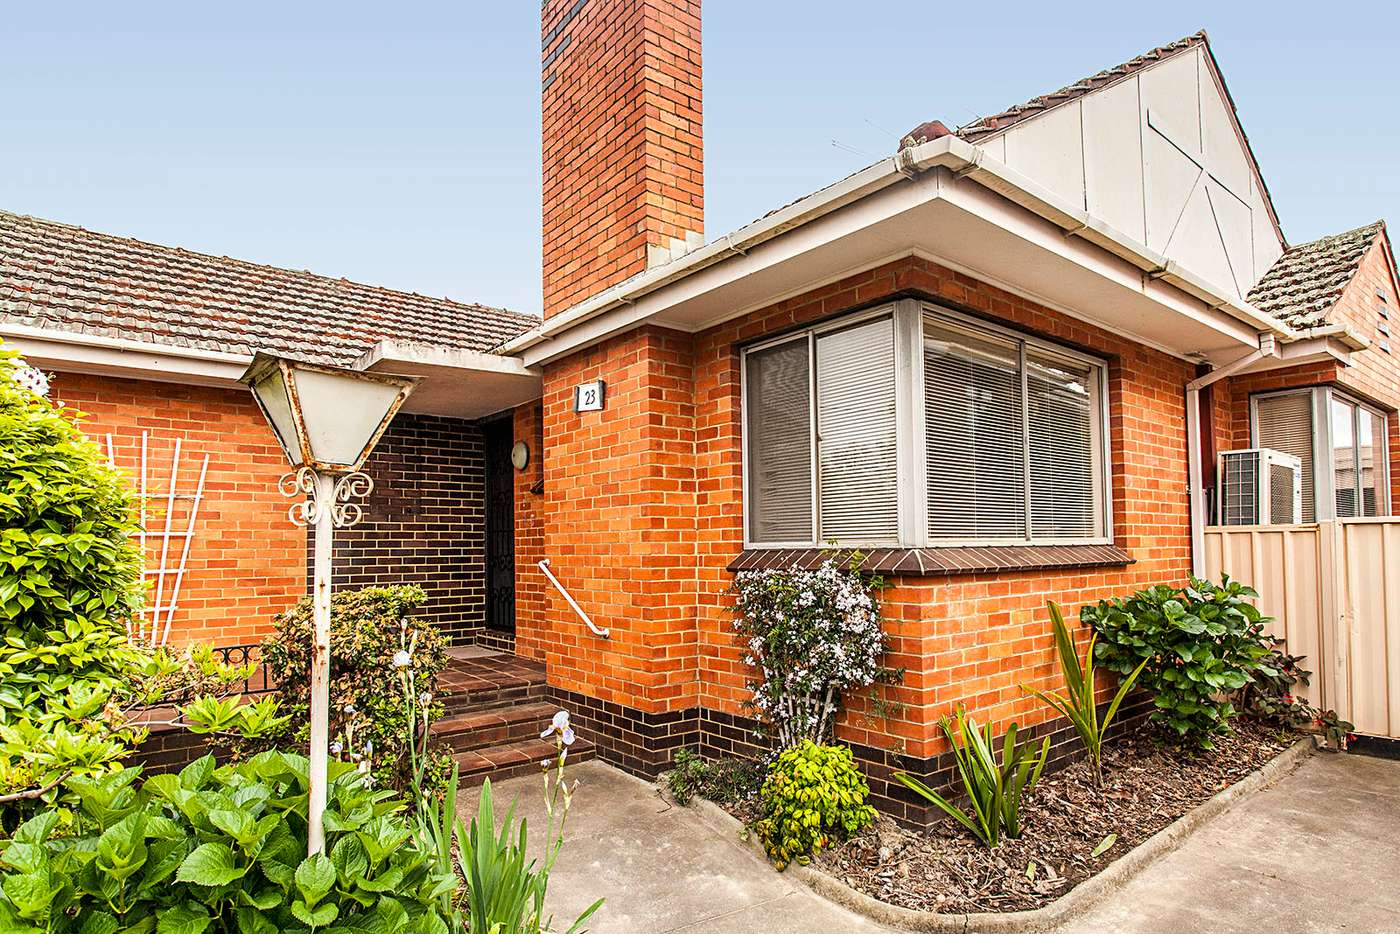 Main view of Homely house listing, 23 Quarry Road, Mitcham VIC 3132